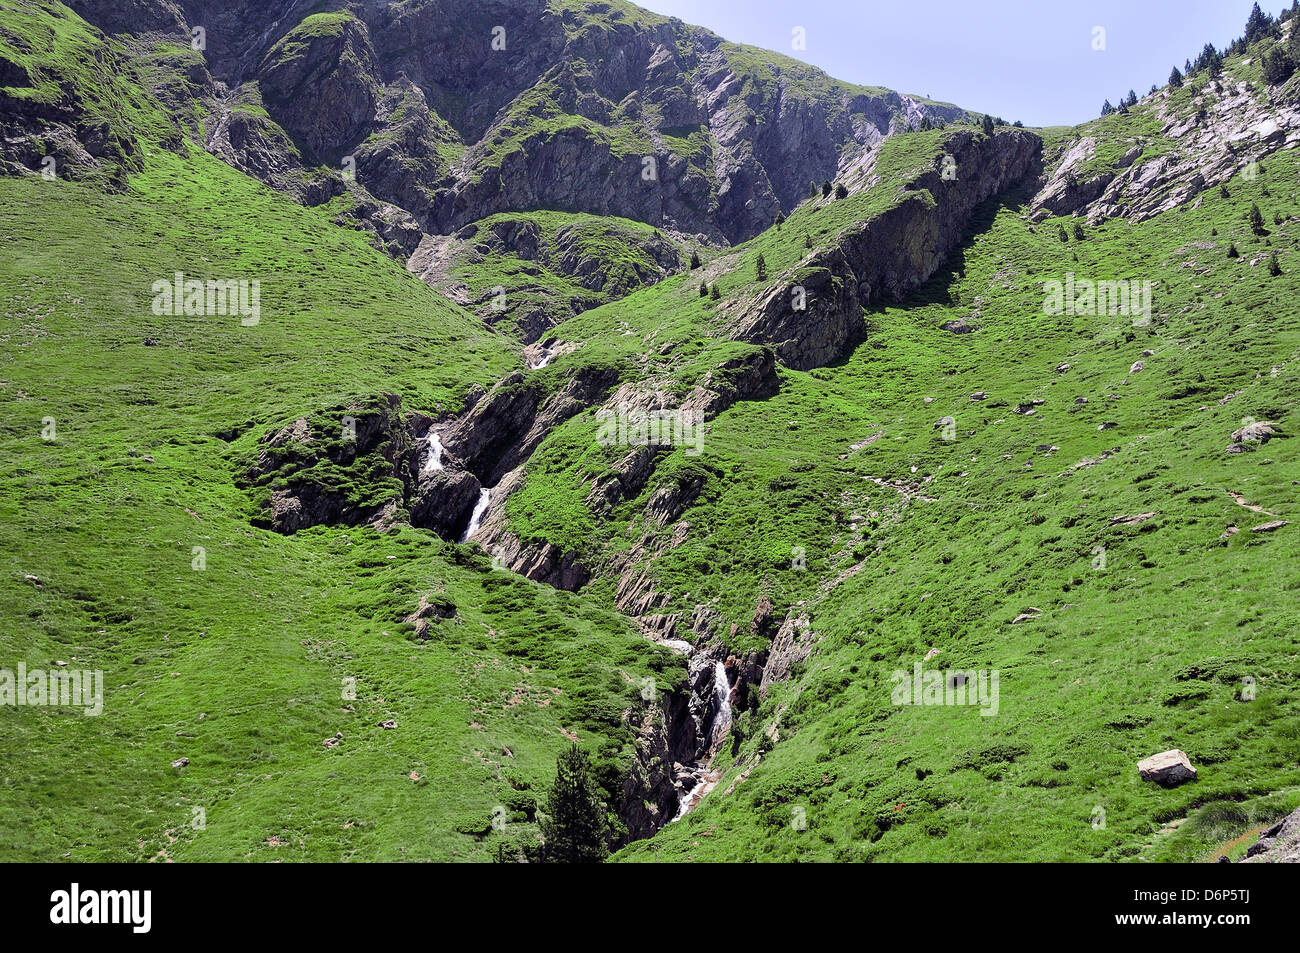 Source of River Neste de Saux at 2400m on the French border with Spain, Hautes-Pyrenees, France, Europe Stock Photo